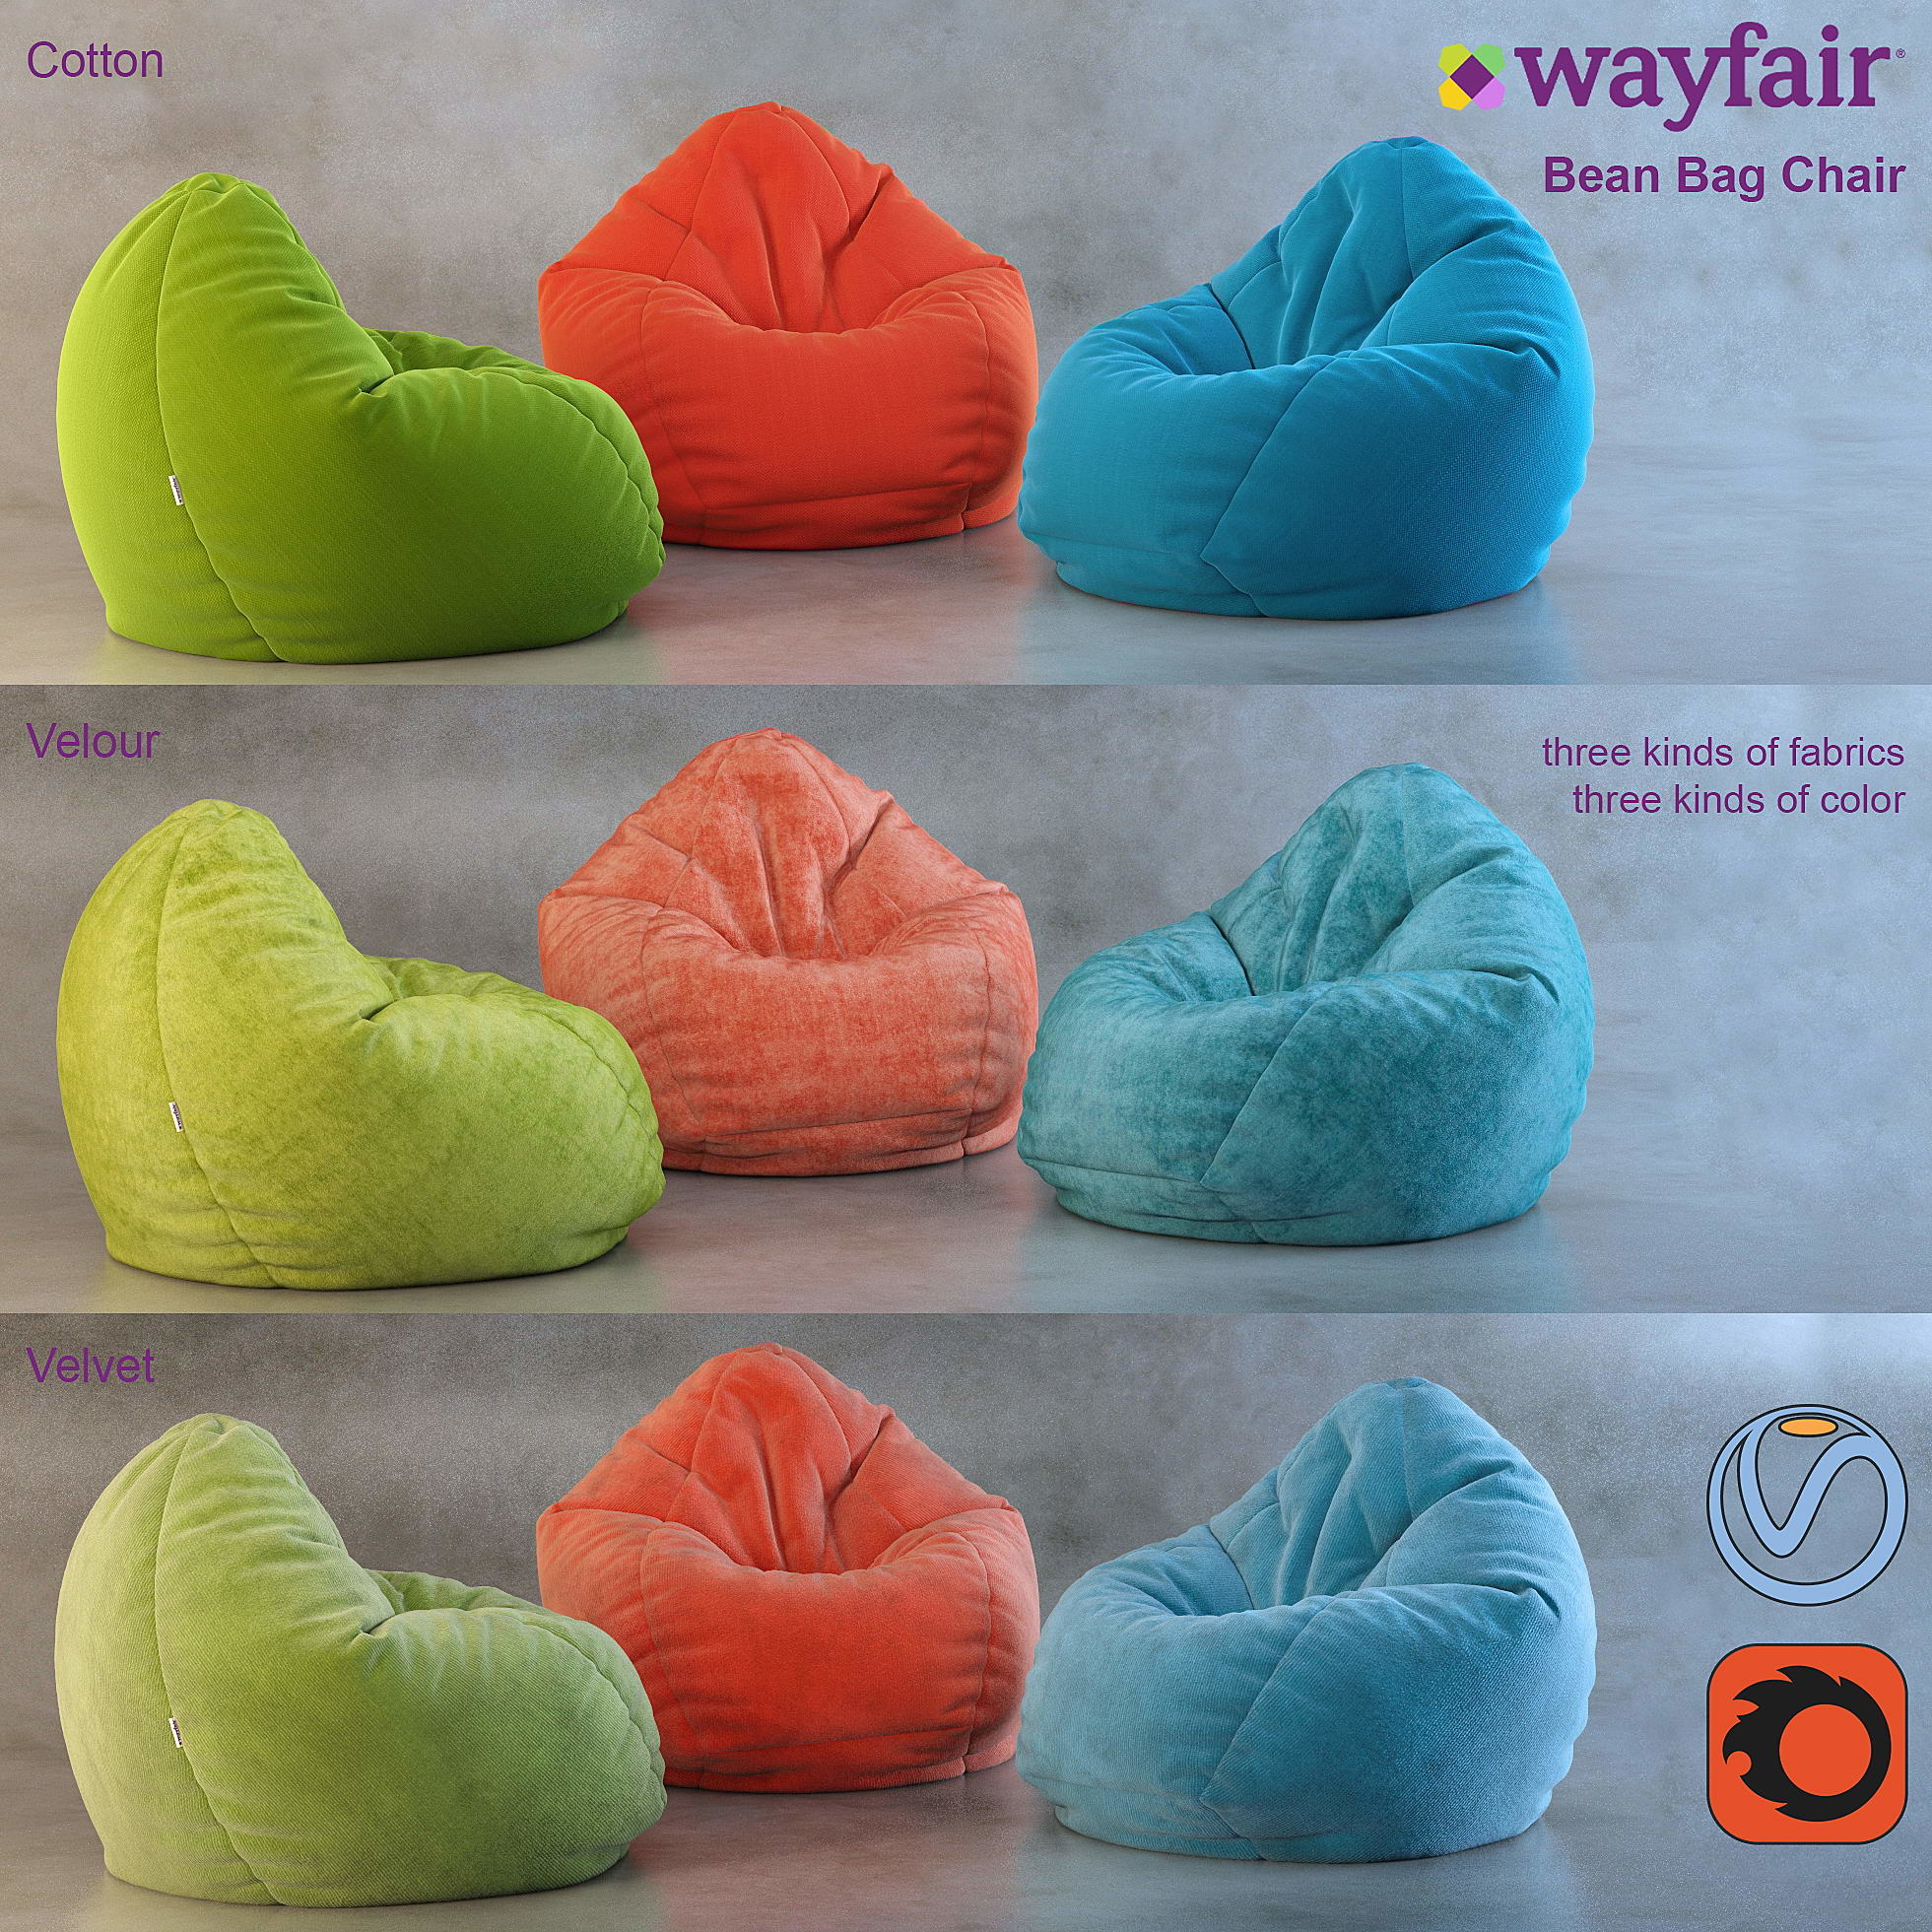 Awesome Bean Bag Chair Wayfair 3D Model Gmtry Best Dining Table And Chair Ideas Images Gmtryco